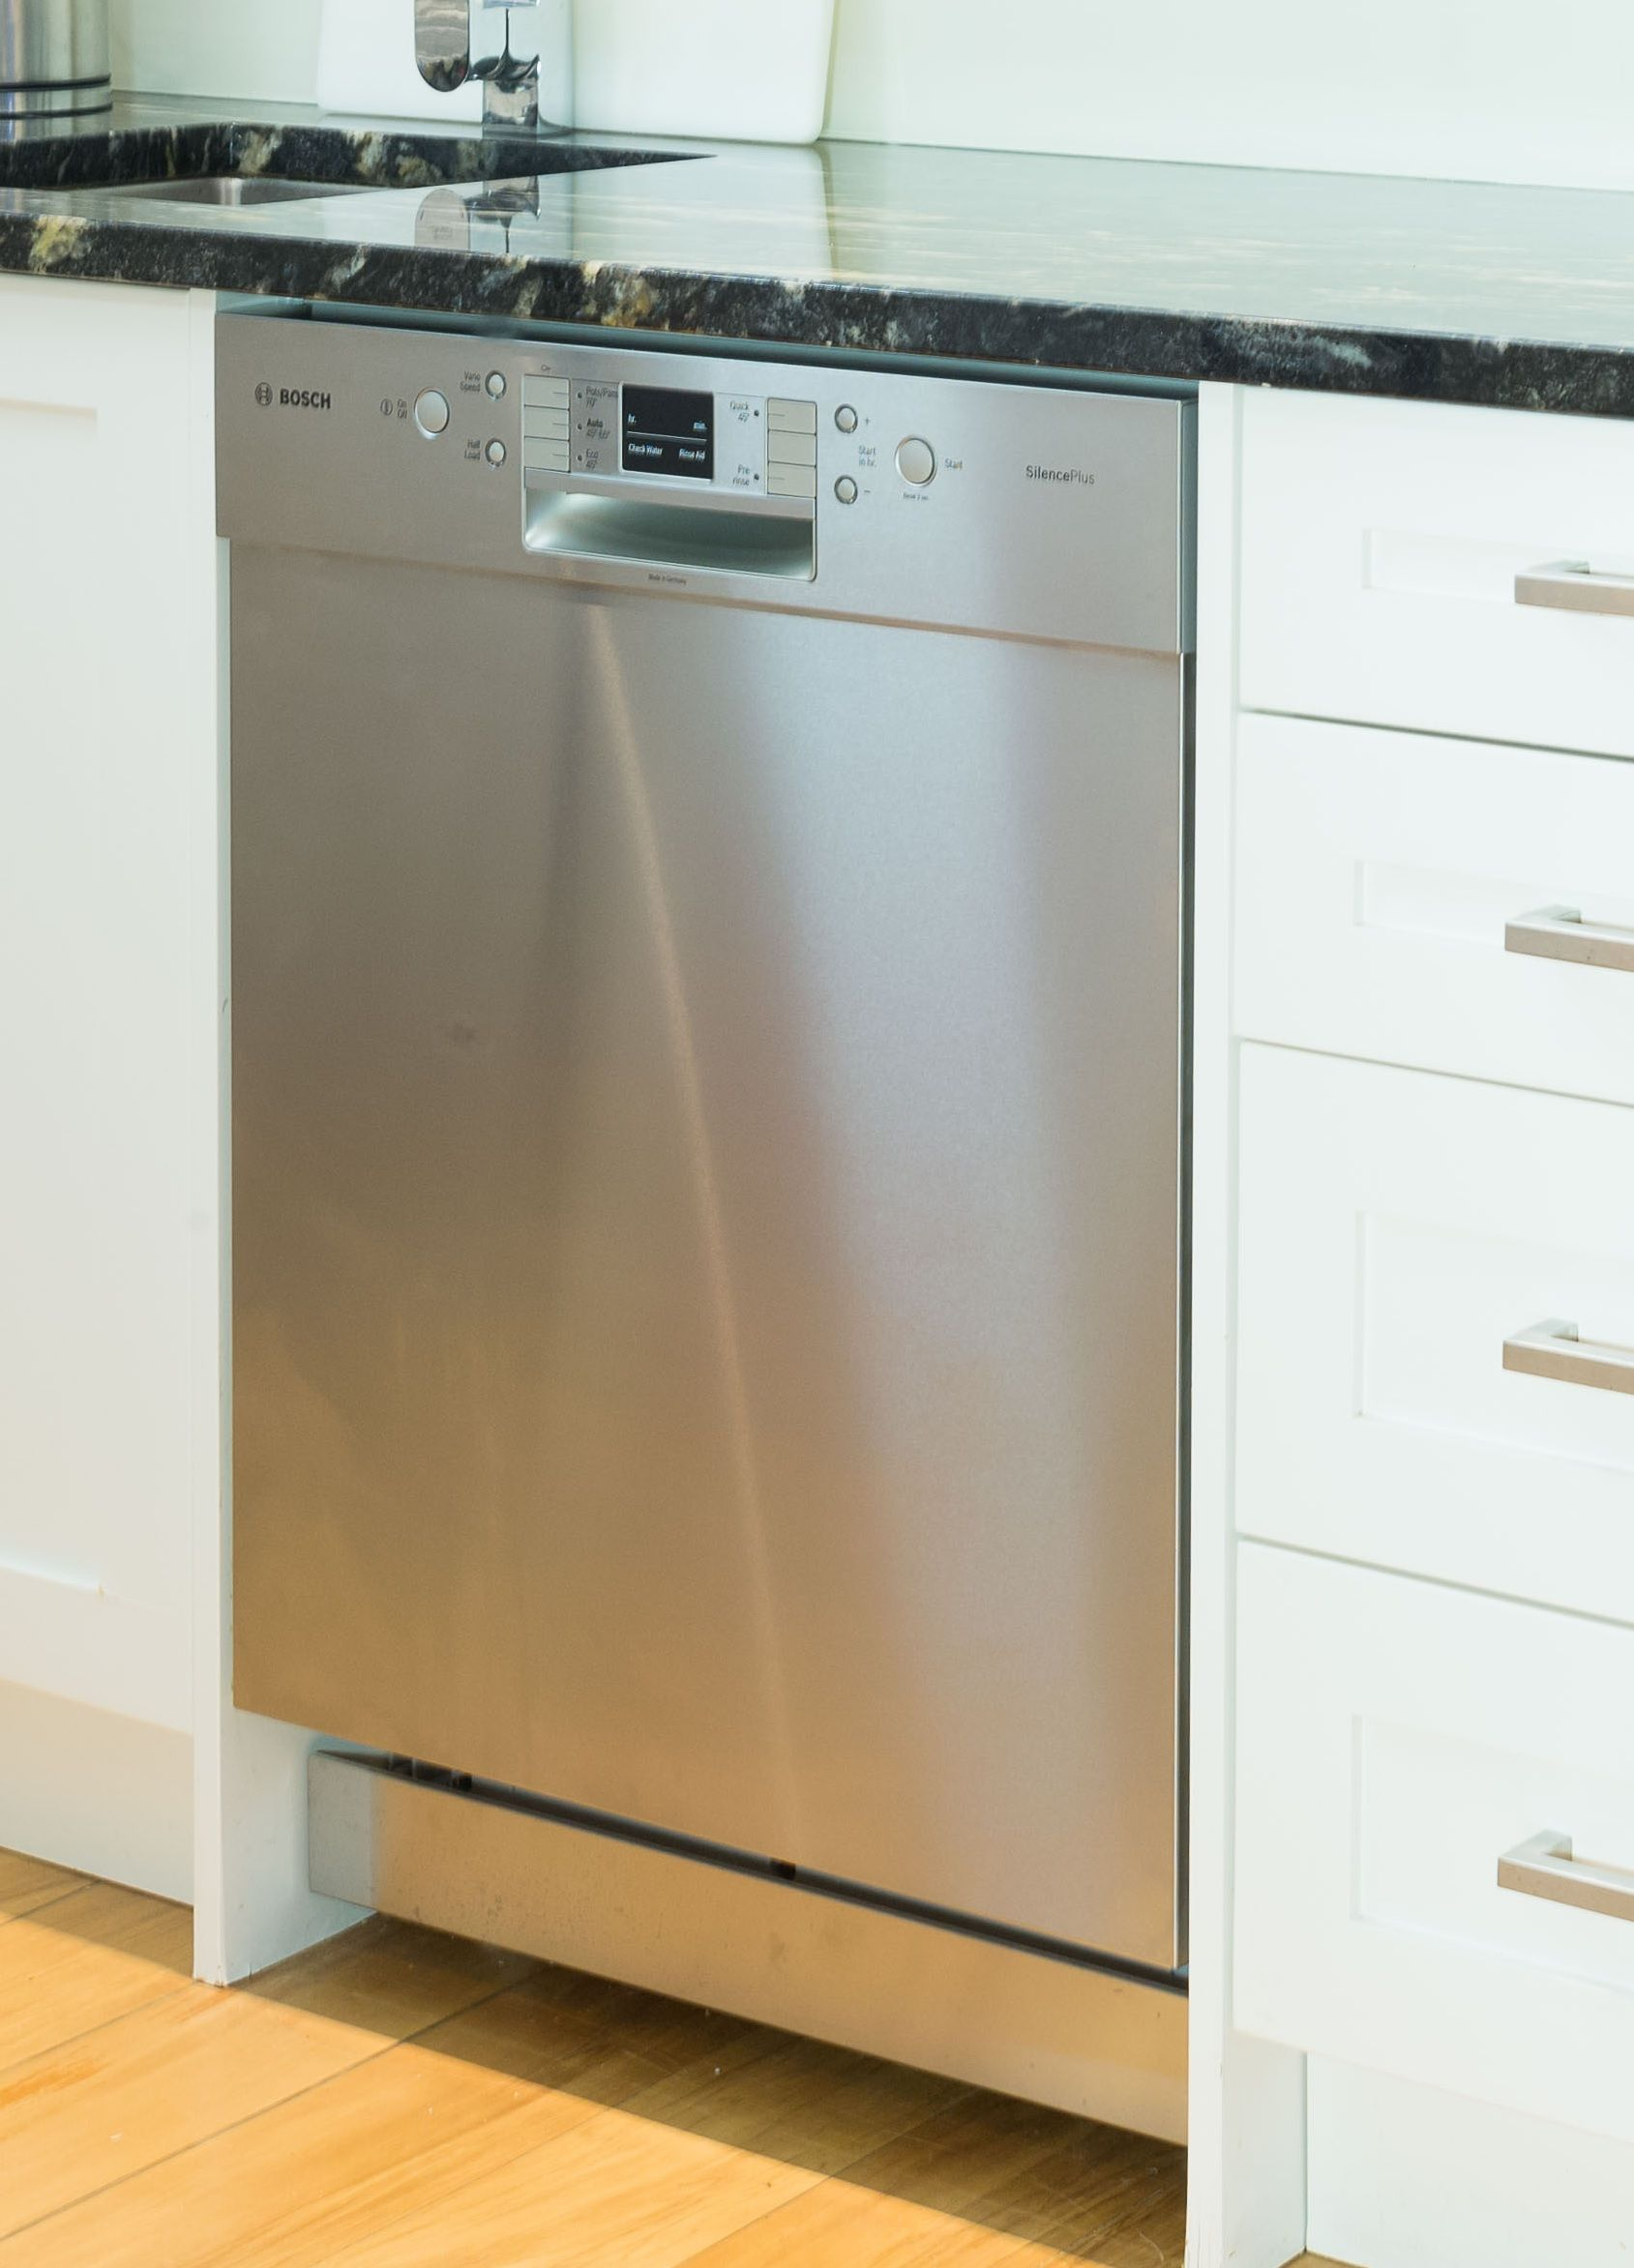 Dishwasher not working well learn how to clean your